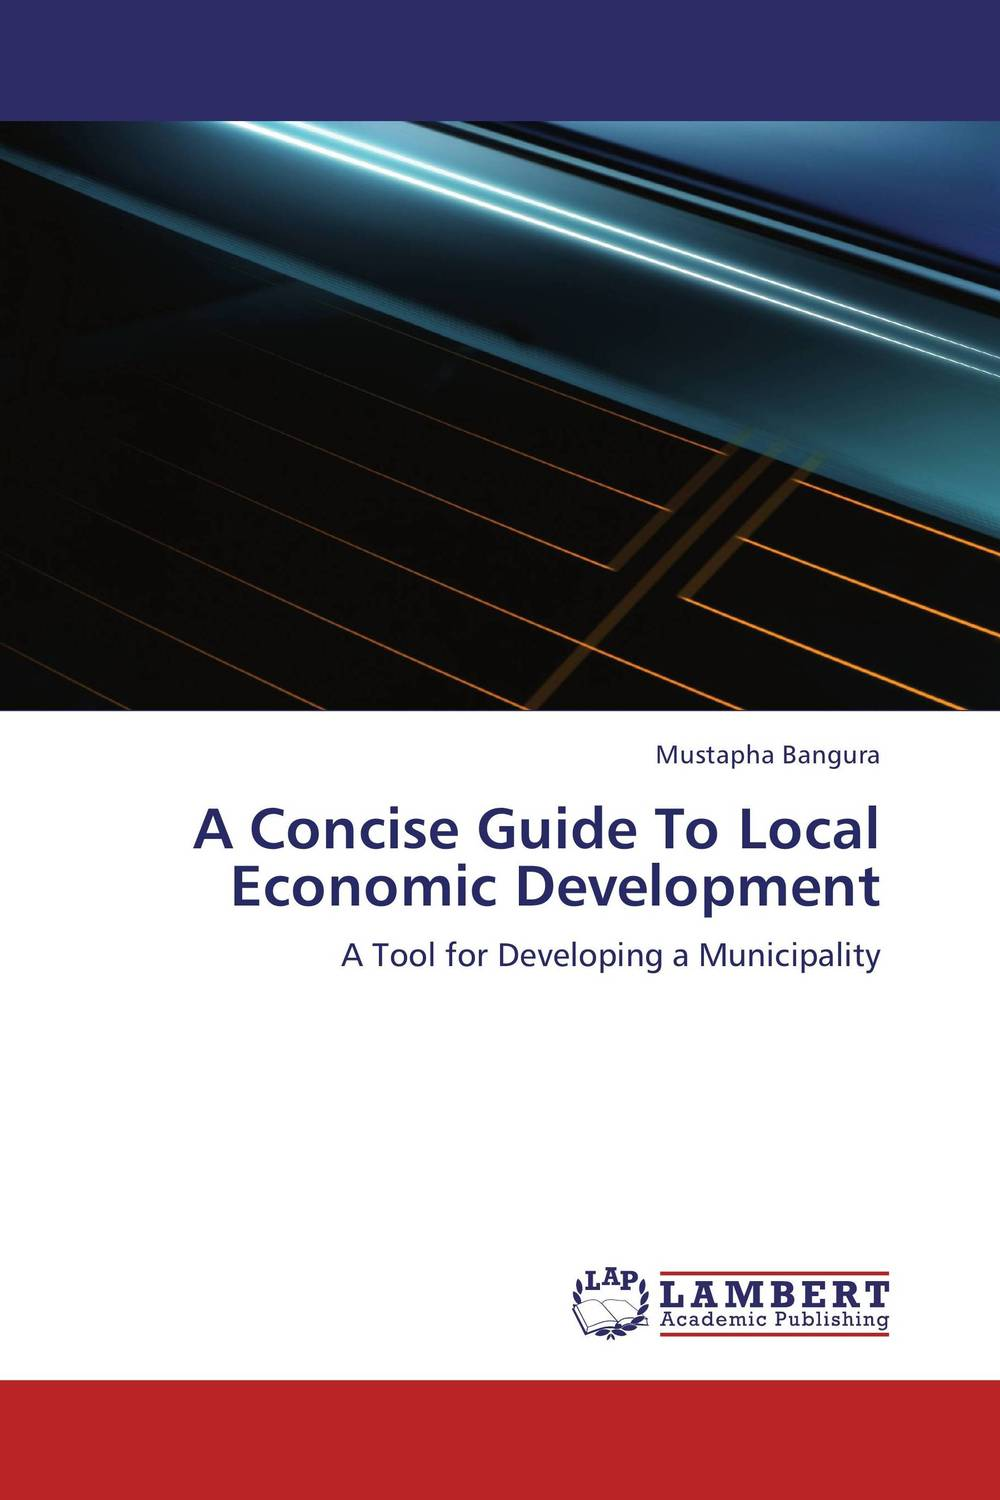 A Concise Guide To Local Economic Development mustapha bangura a concise guide to local economic development